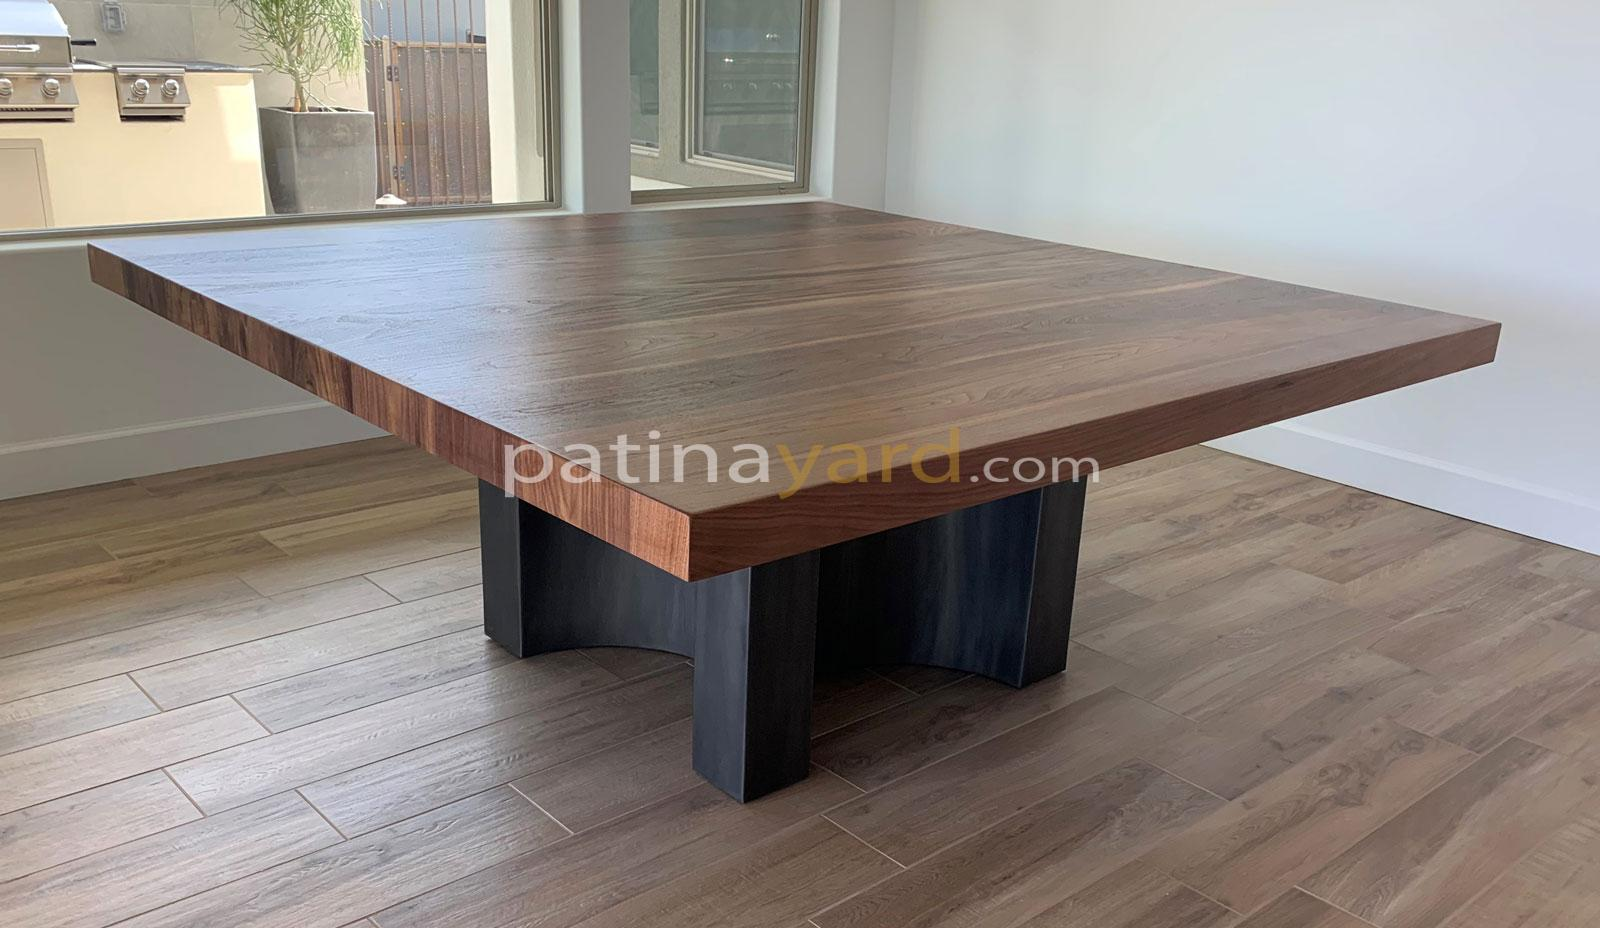 walnut and curved steel base